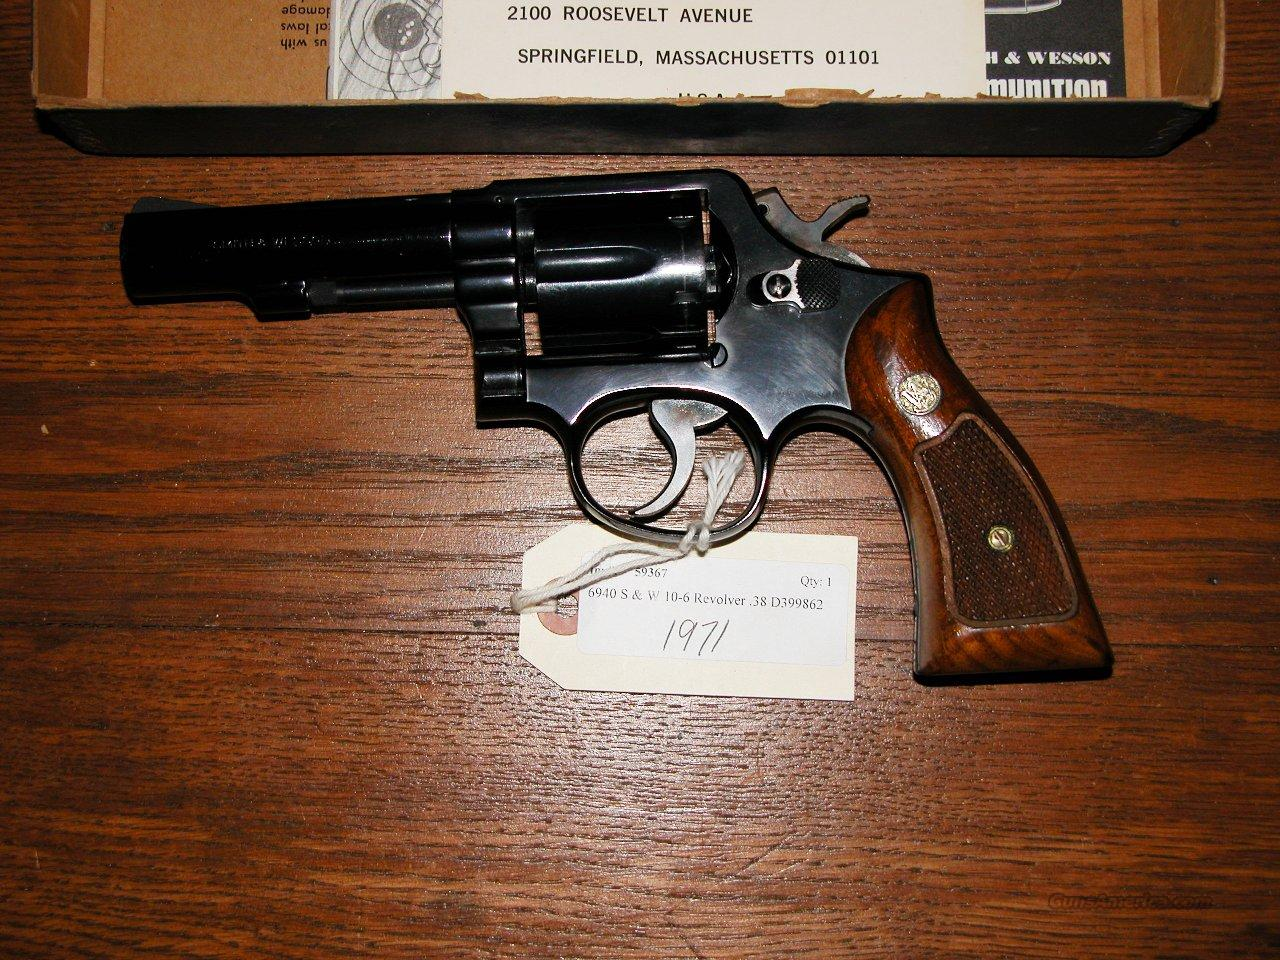 S&W M10-6  38 SPECIAL   1971  Guns > Pistols > Smith & Wesson Revolvers > Full Frame Revolver